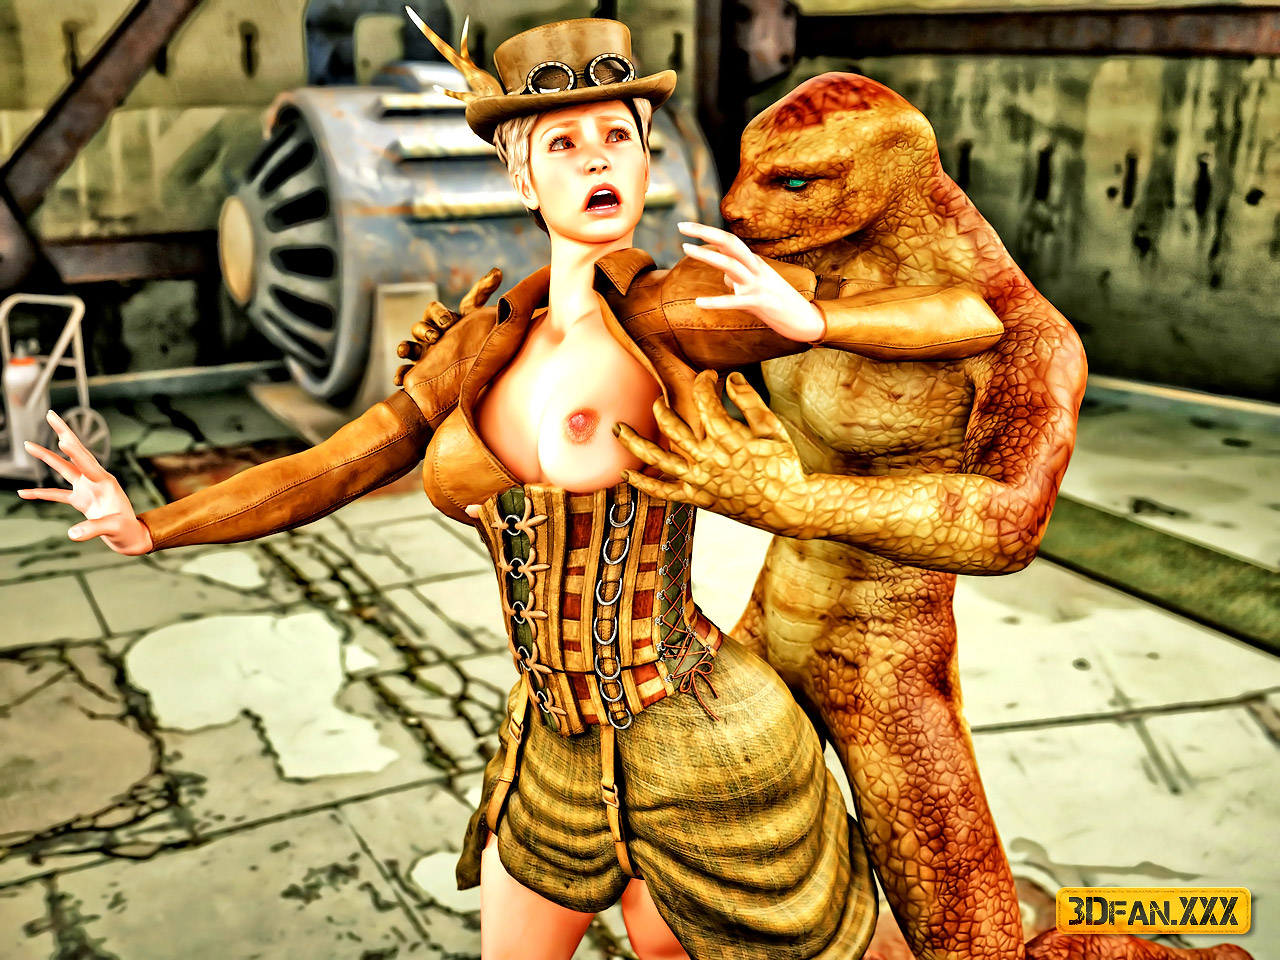 Snake porn d3 erotic toons